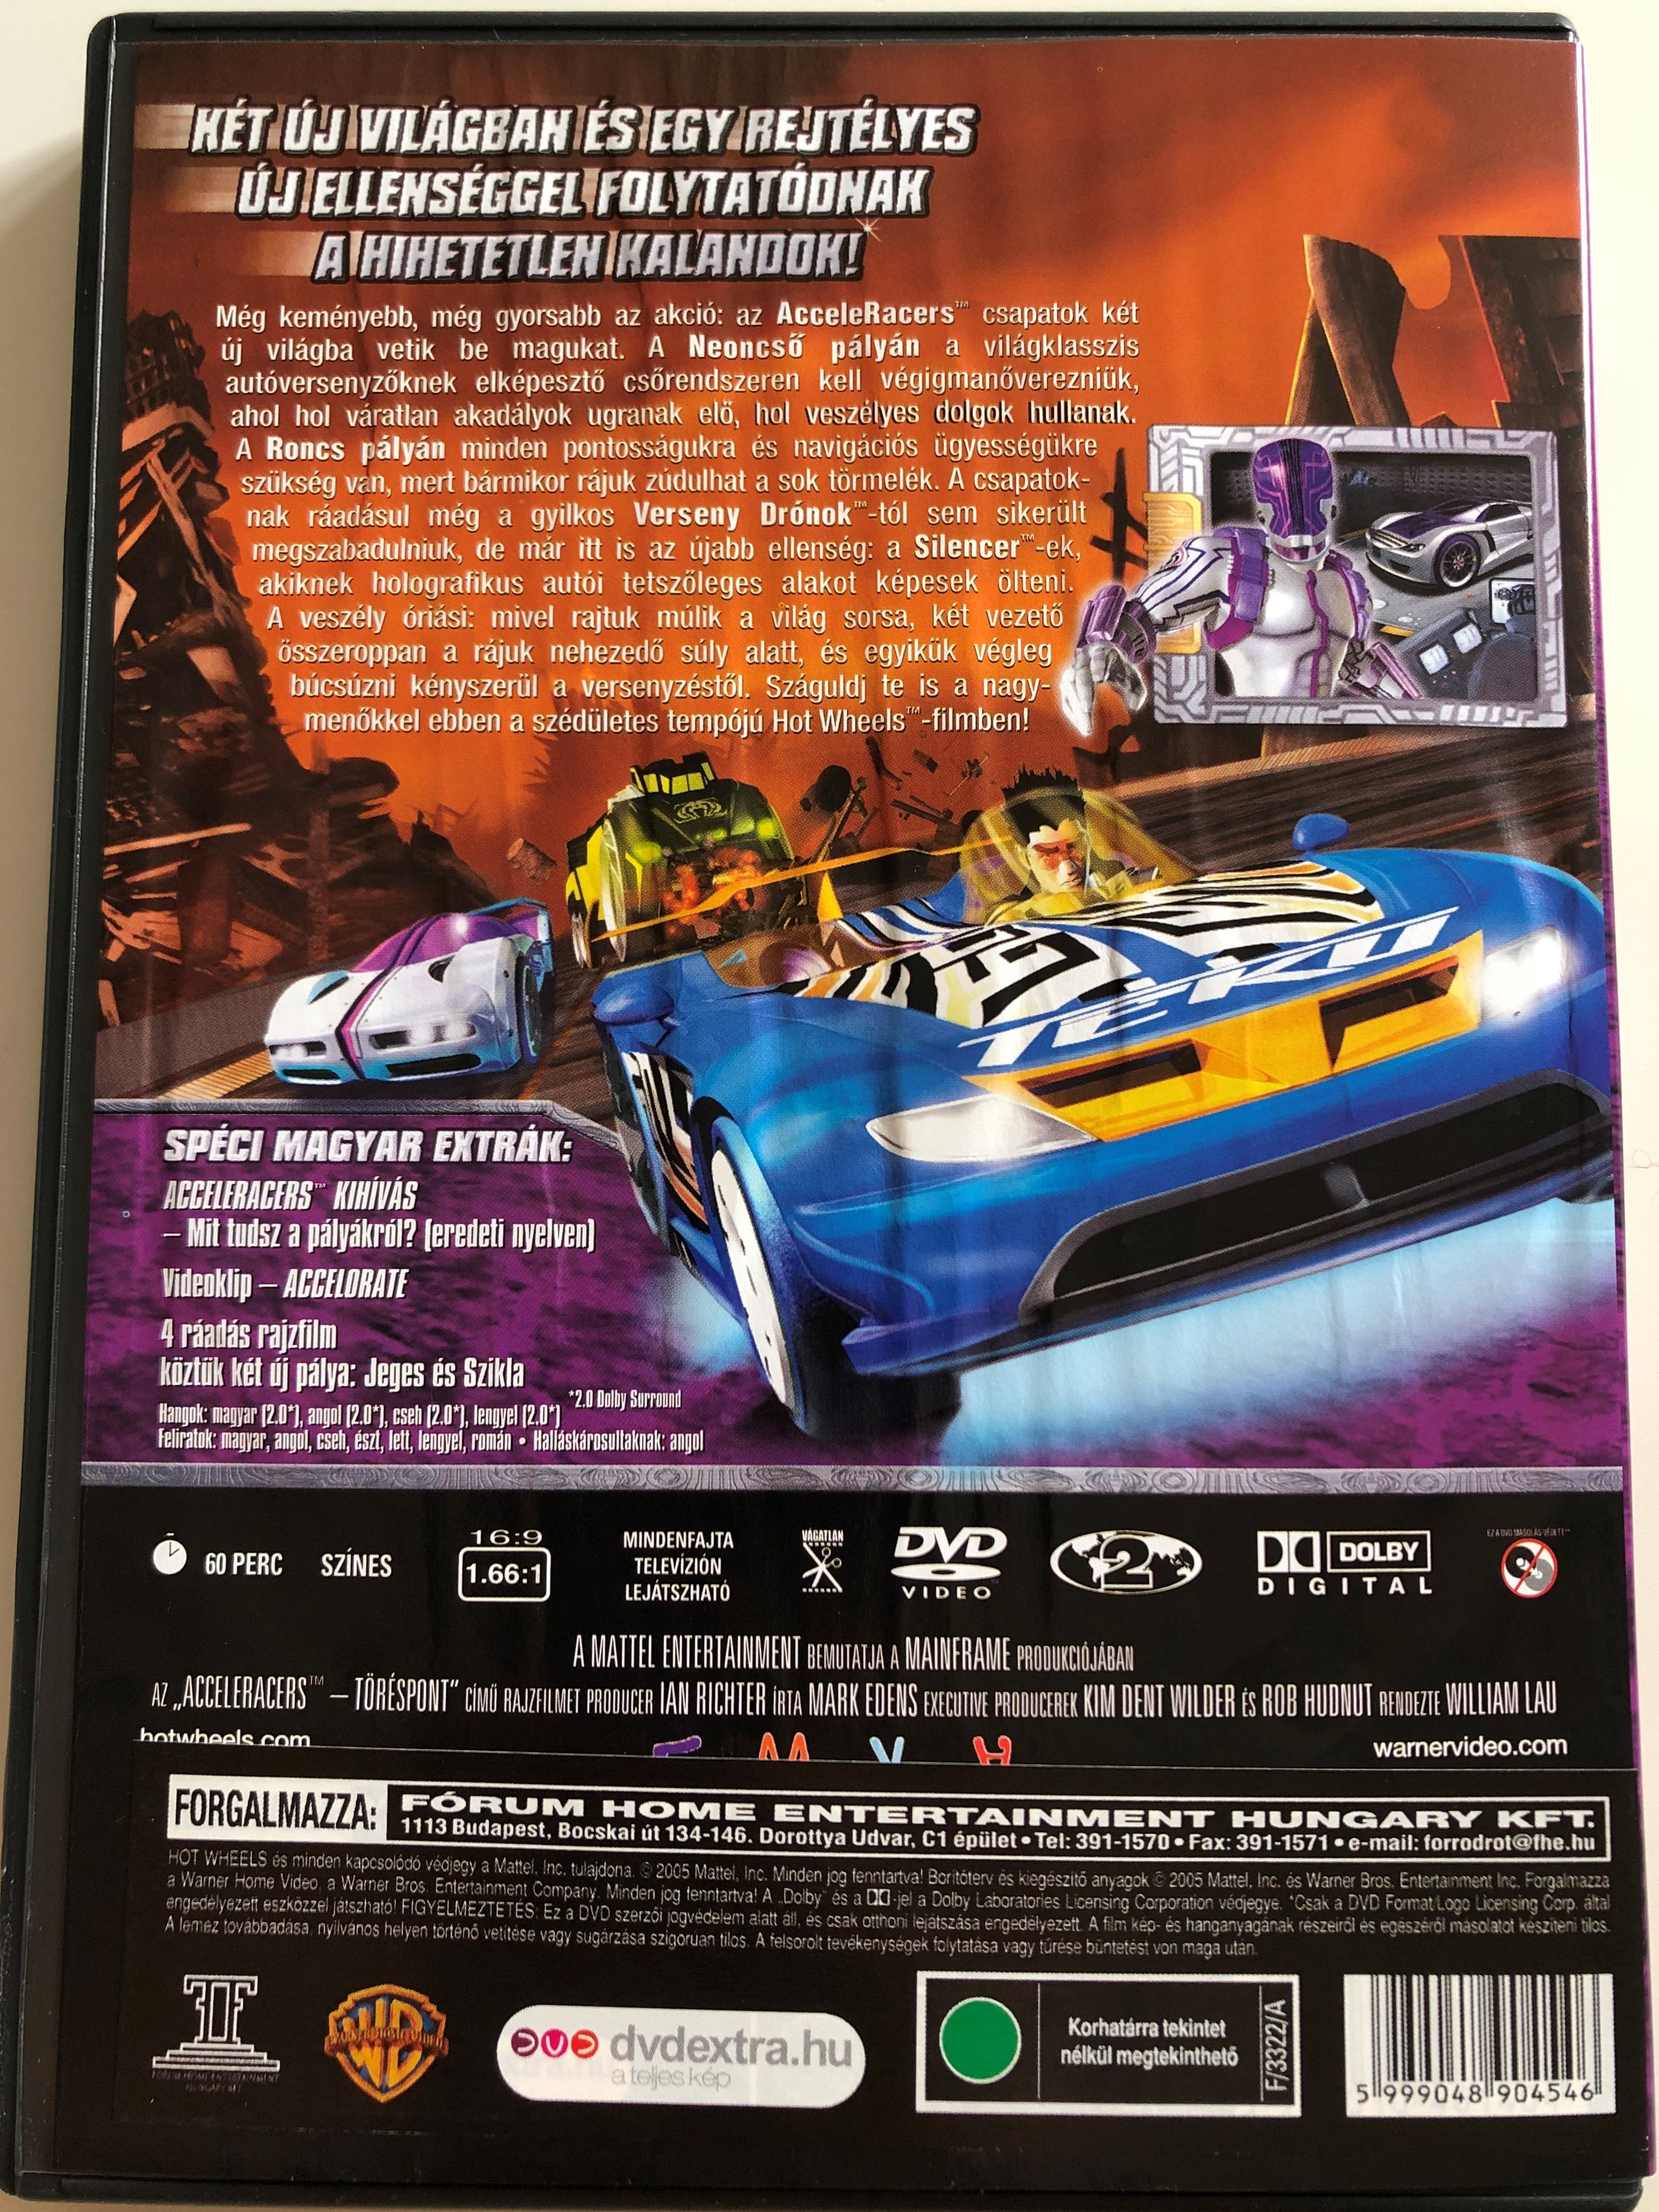 hot-wheels-acceleracers-breaking-point-dvd-2005-hot-wheels-t-r-spont-directed-by-william-lau-mattel-entertainment-3.-movie-in-series-created-by-mark-edens-ian-richter-2-.jpg